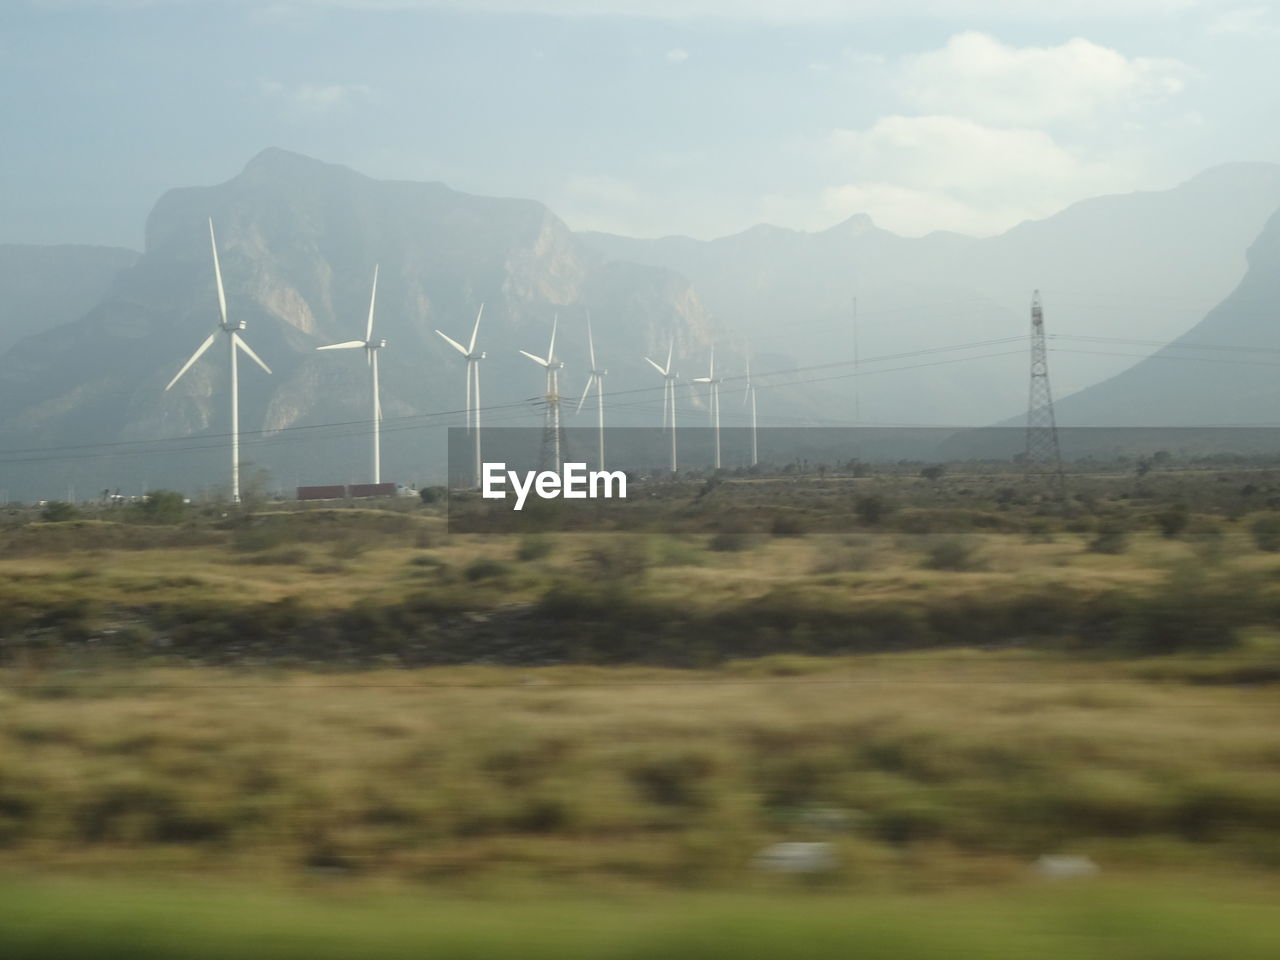 fuel and power generation, mountain, environmental conservation, alternative energy, landscape, wind turbine, field, wind power, renewable energy, no people, nature, day, outdoors, windmill, industrial windmill, sky, mountain range, electricity, rural scene, beauty in nature, grass, scenics, electricity pylon, technology